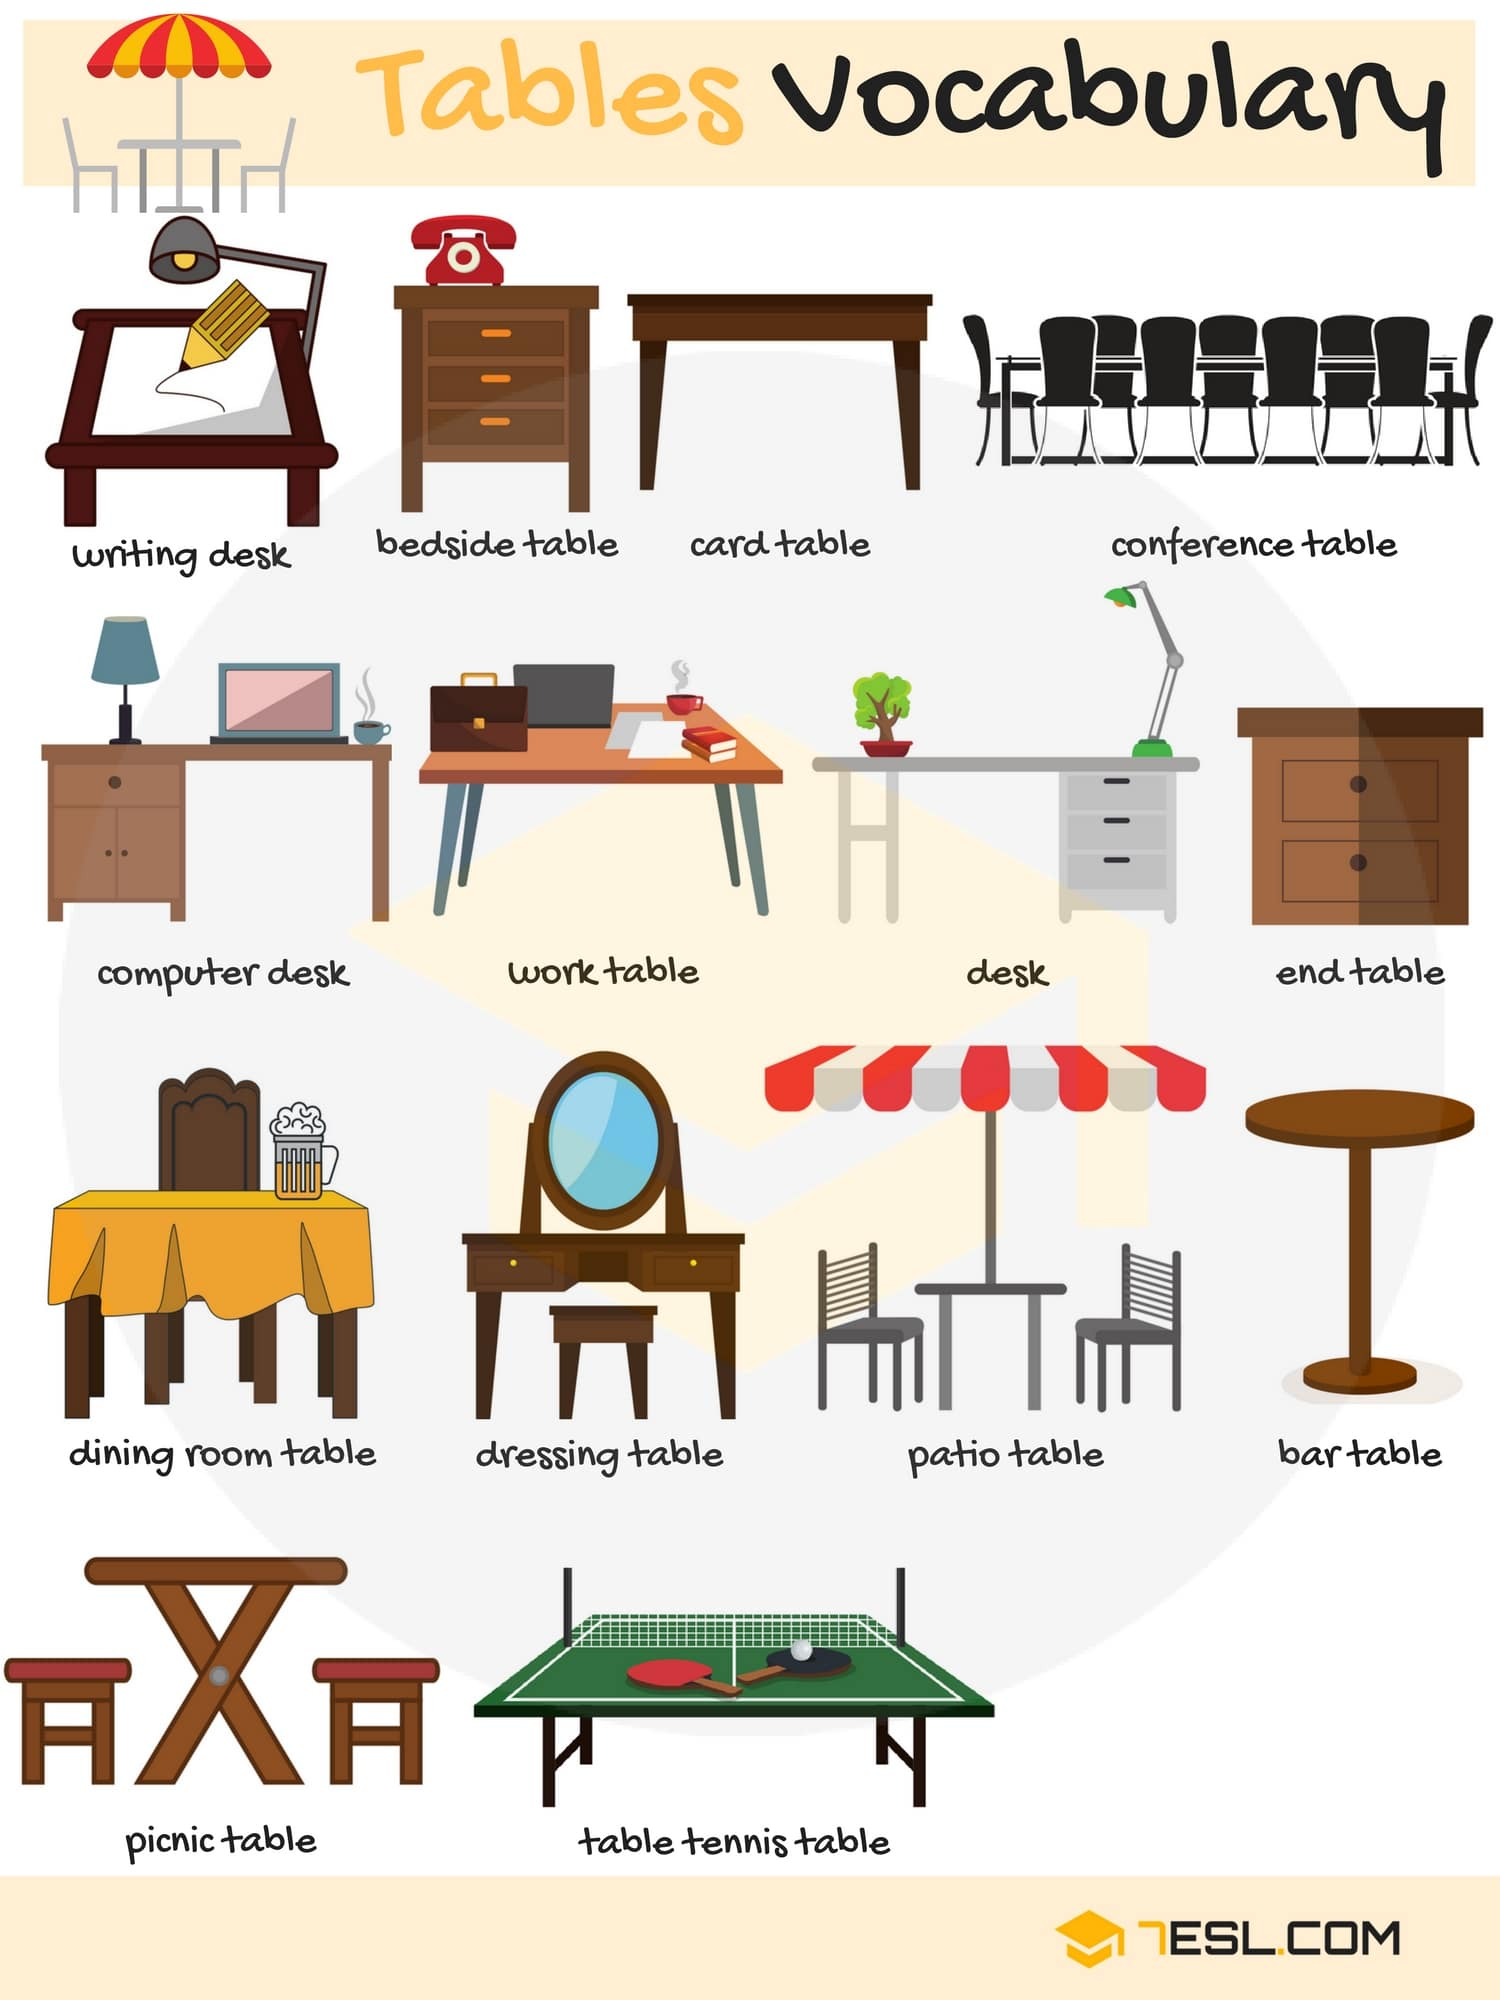 Rooms in a House Vocabulary in English 4